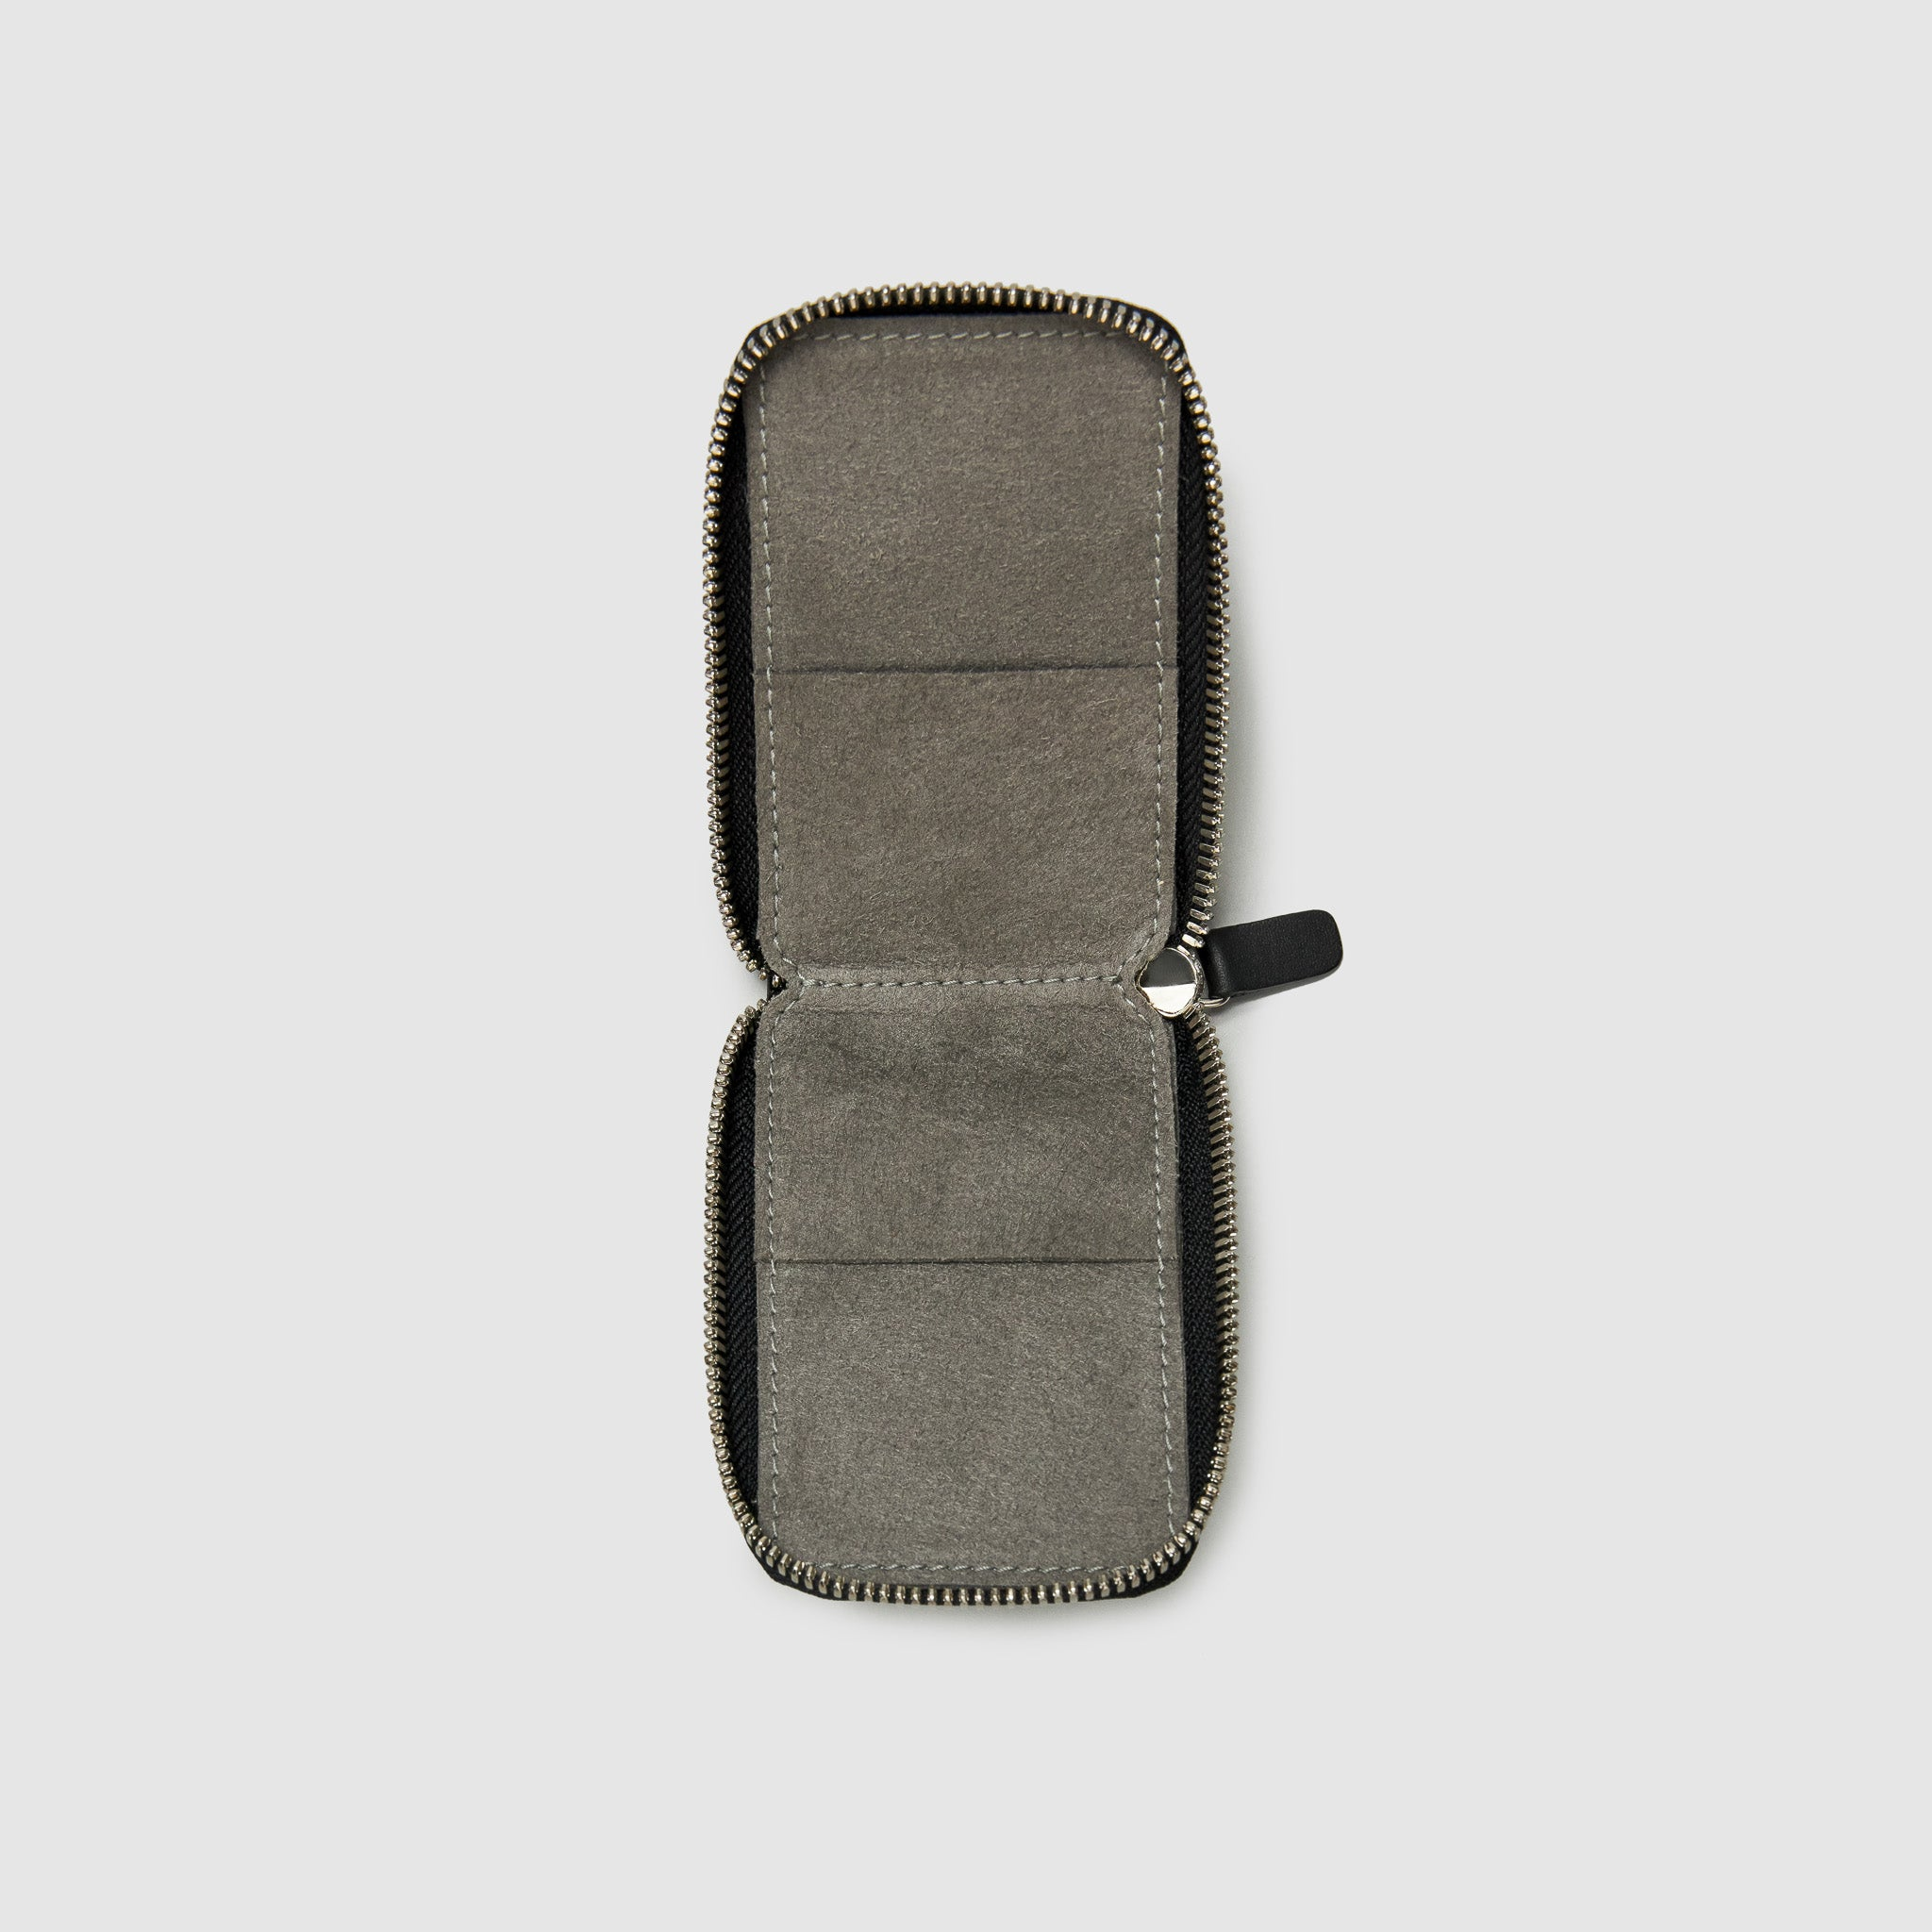 Anson Calder zip-around Wallet with zipper and pockets RFID french calfskin leather *hover _black